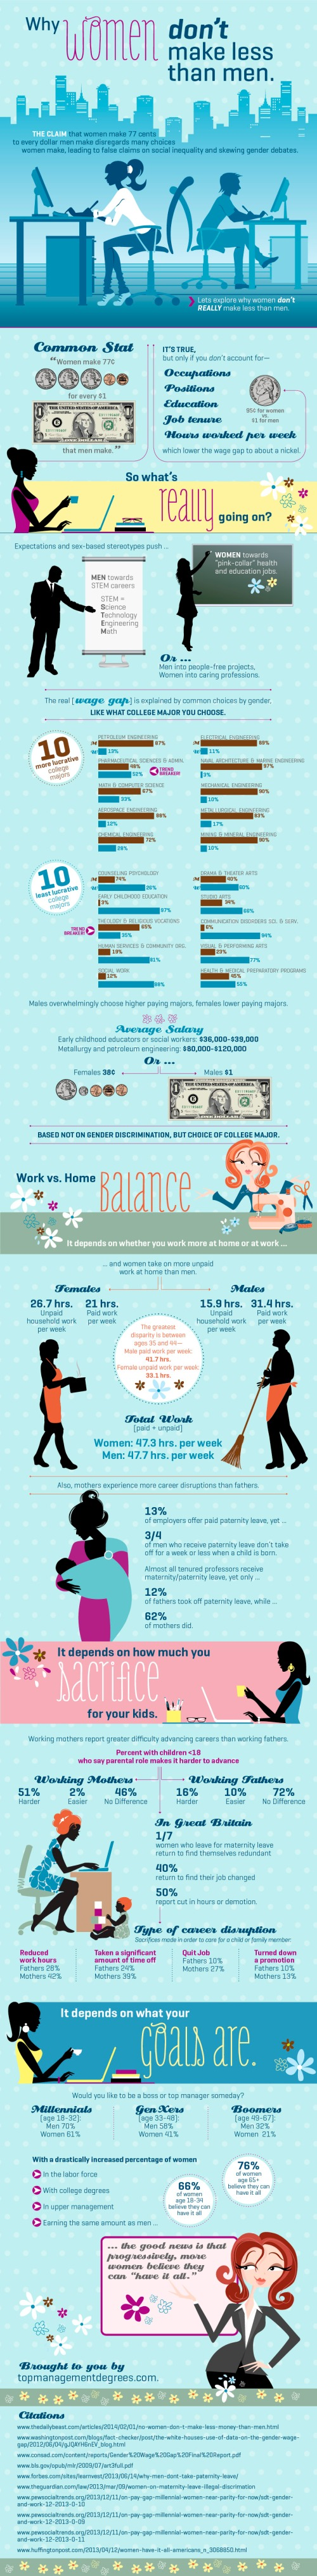 Why Women Don't Make Less than Men [Infographic]